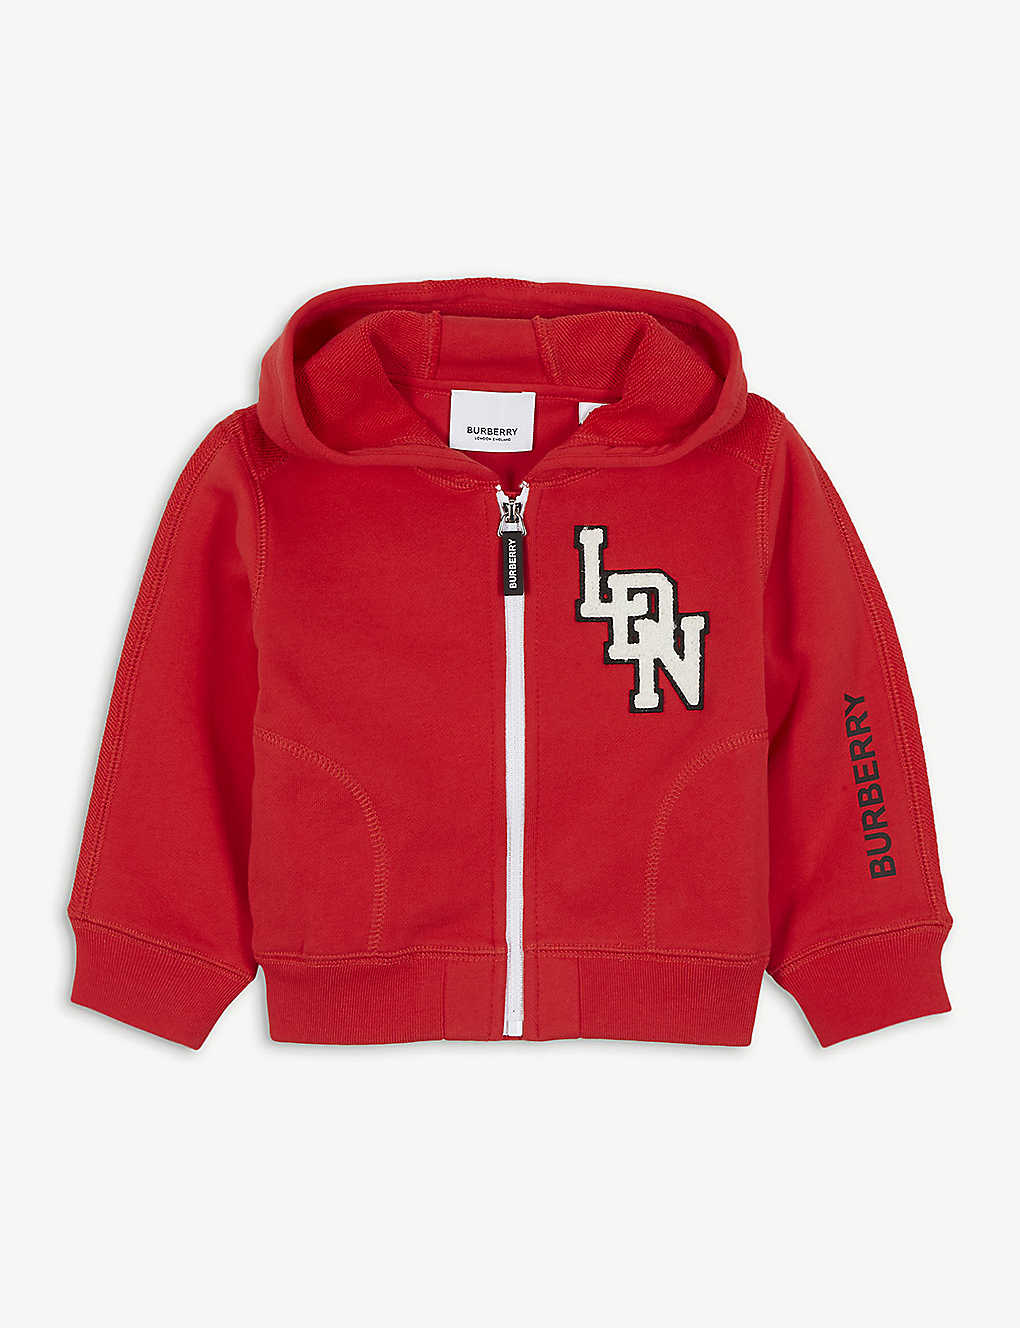 BURBERRY: Logo patch cotton hoody 6-24 months